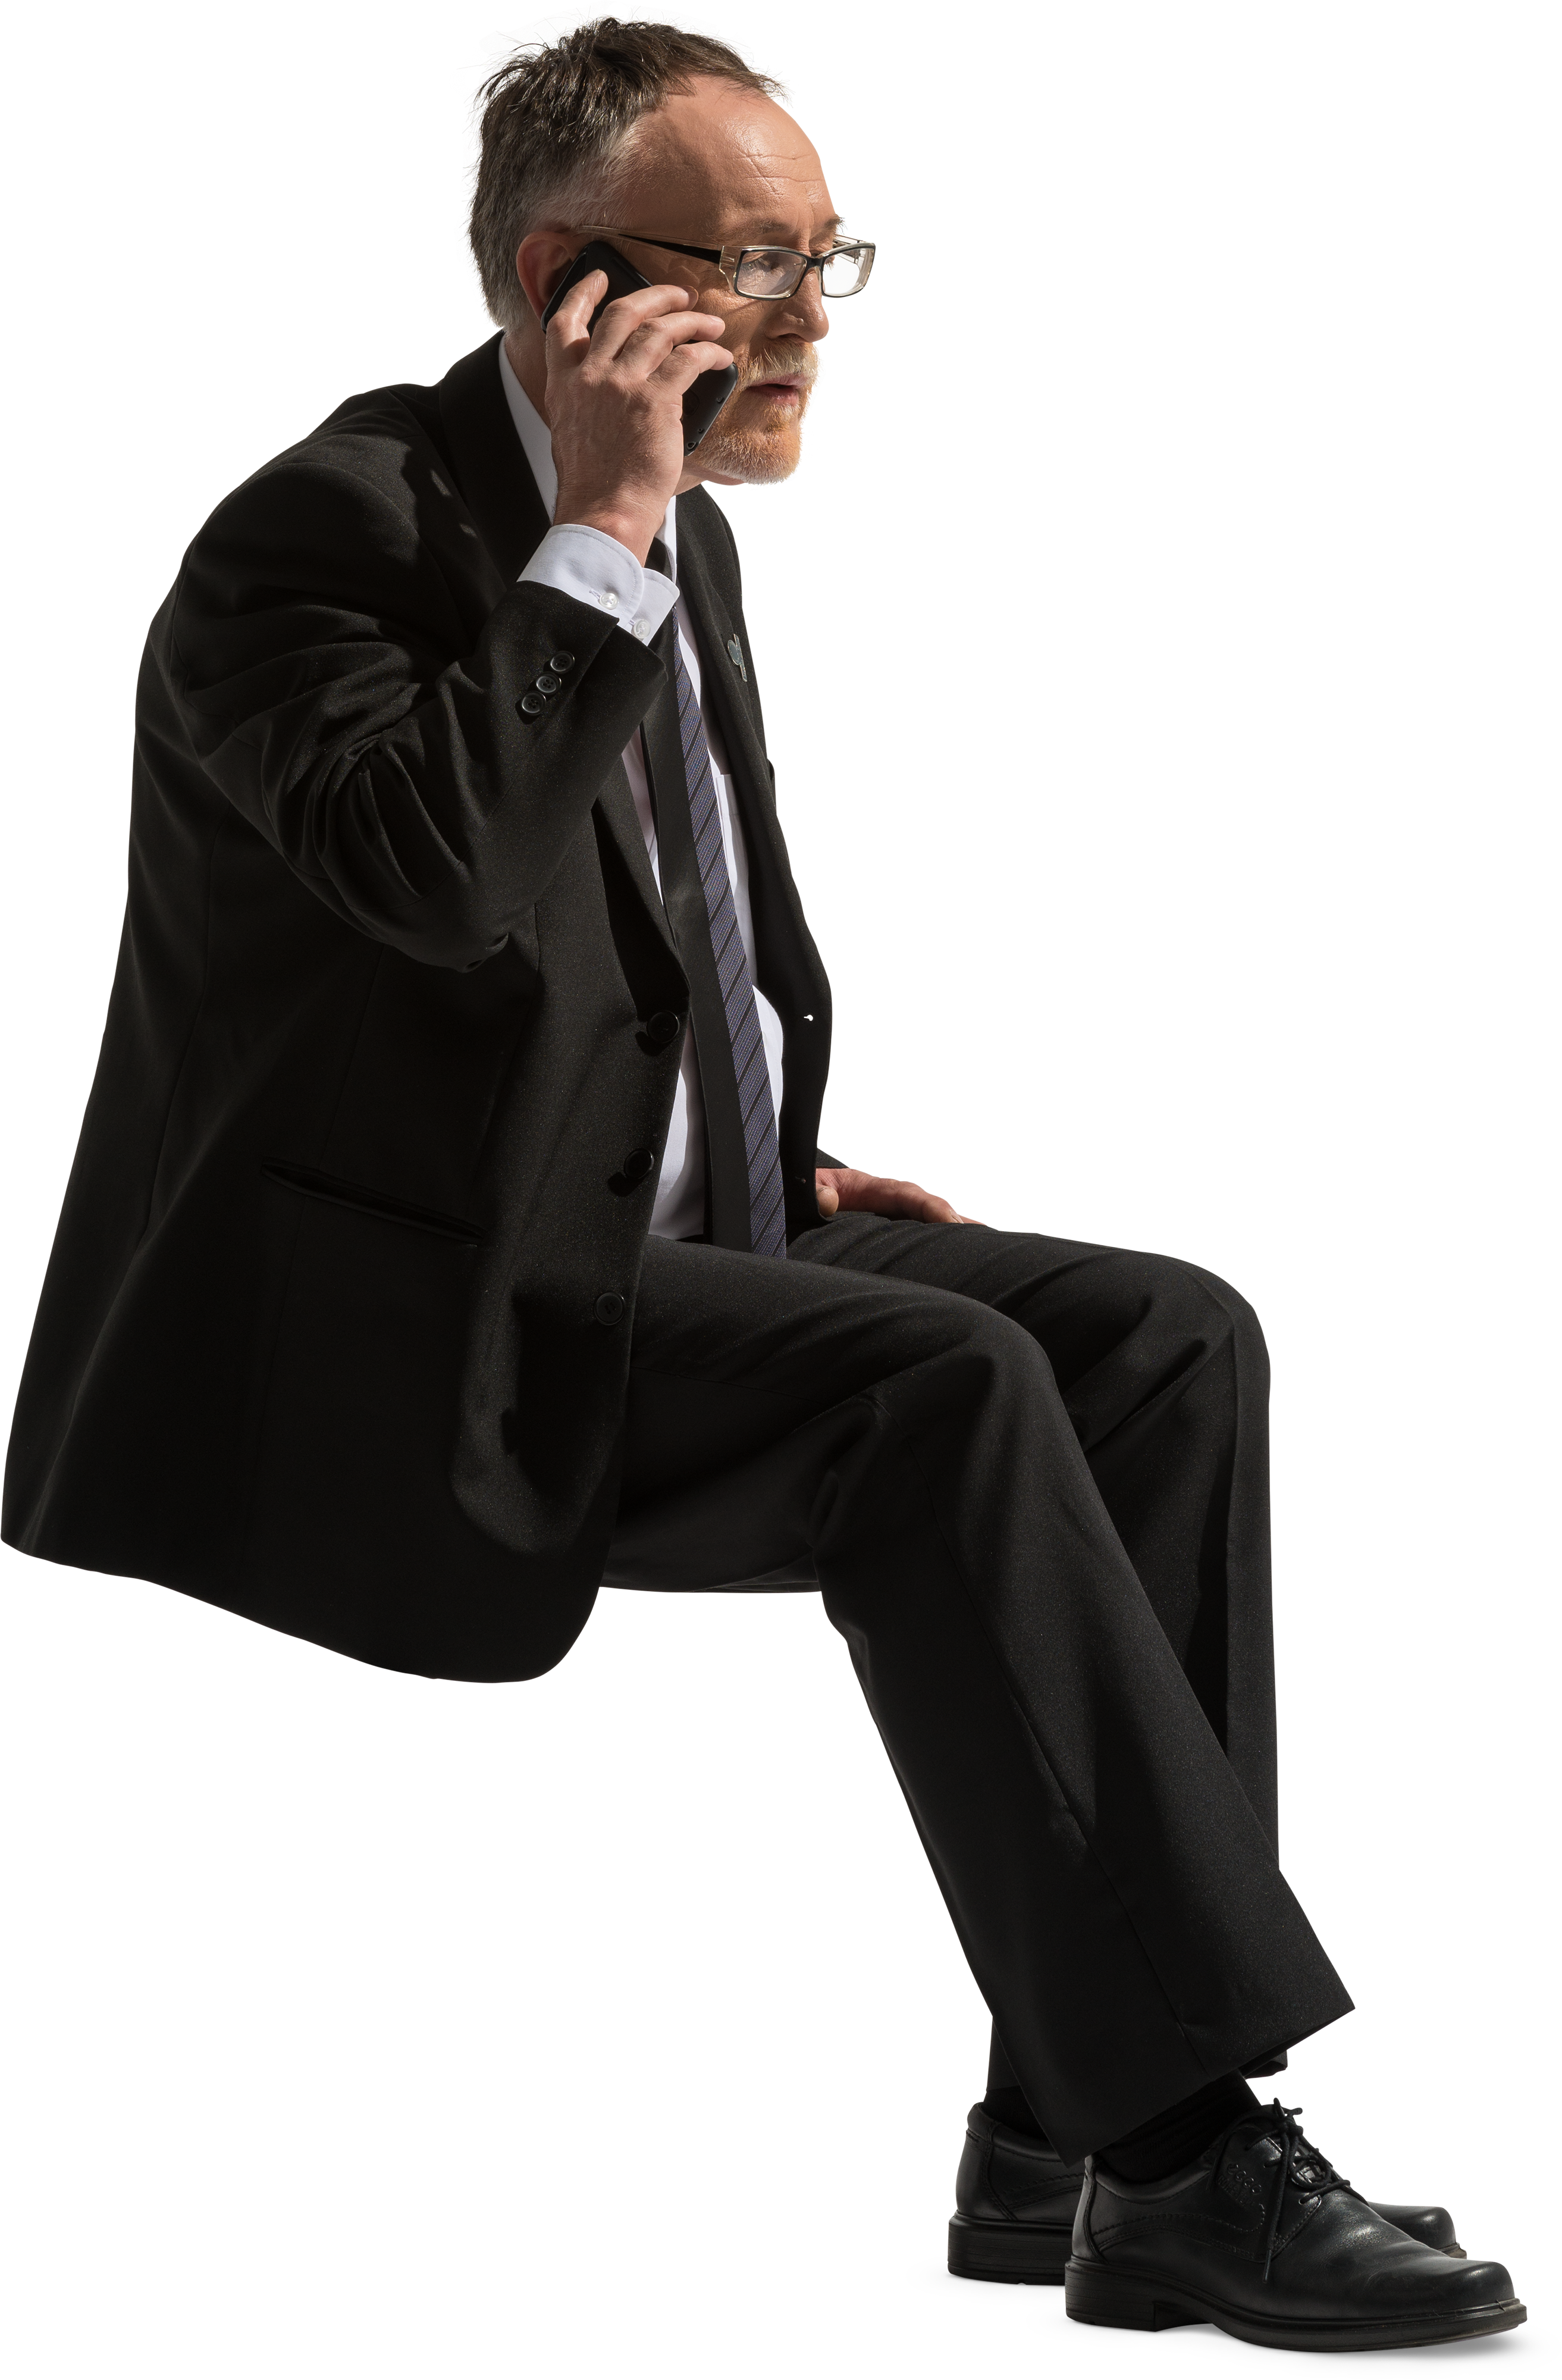 HD People Png With Hd Resolution Free Download Collection.